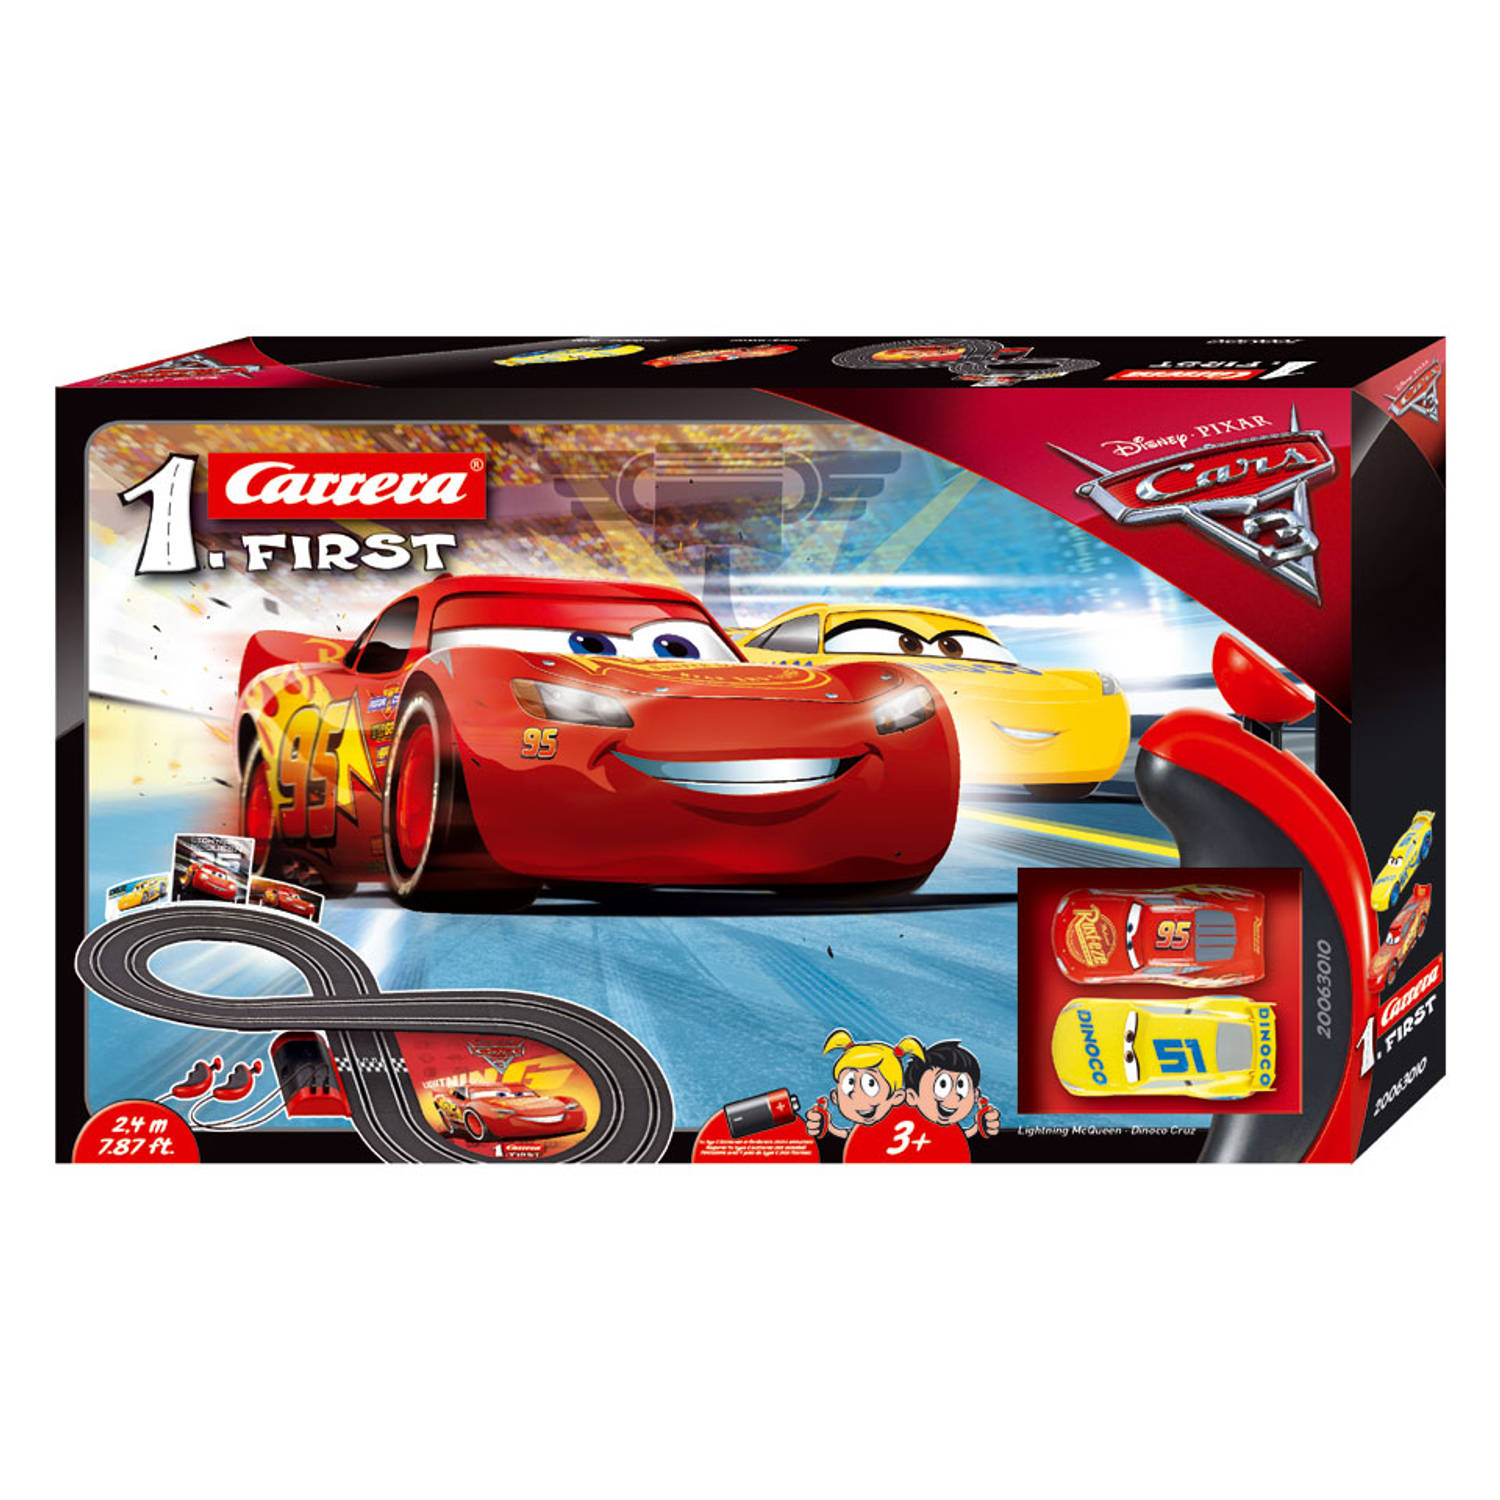 Carrera first cars 3